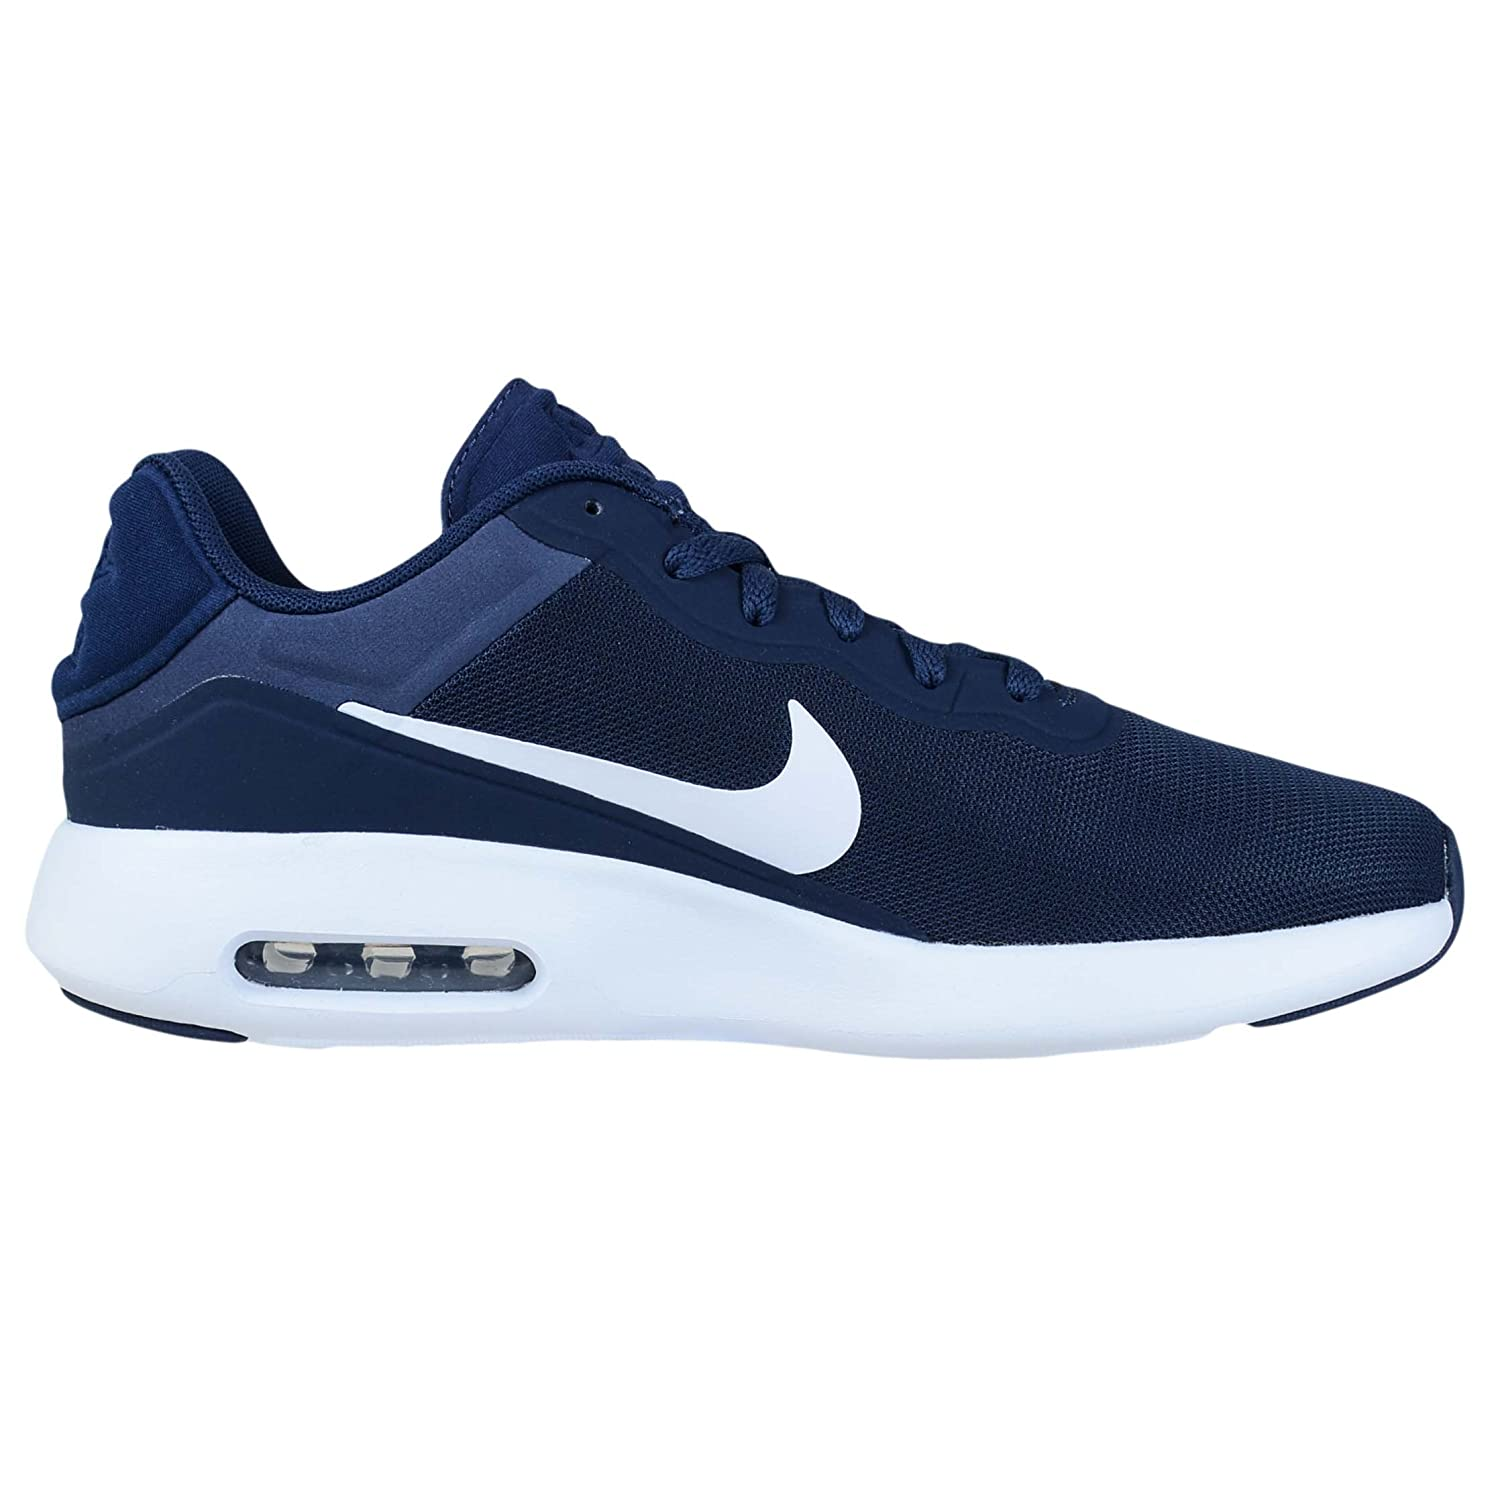 NIKE Air Max Modern Essential Mens Running Trainers 844874 Sneakers Shoes B01N69IKML 9 B(M) US|Midnight Navy White 401